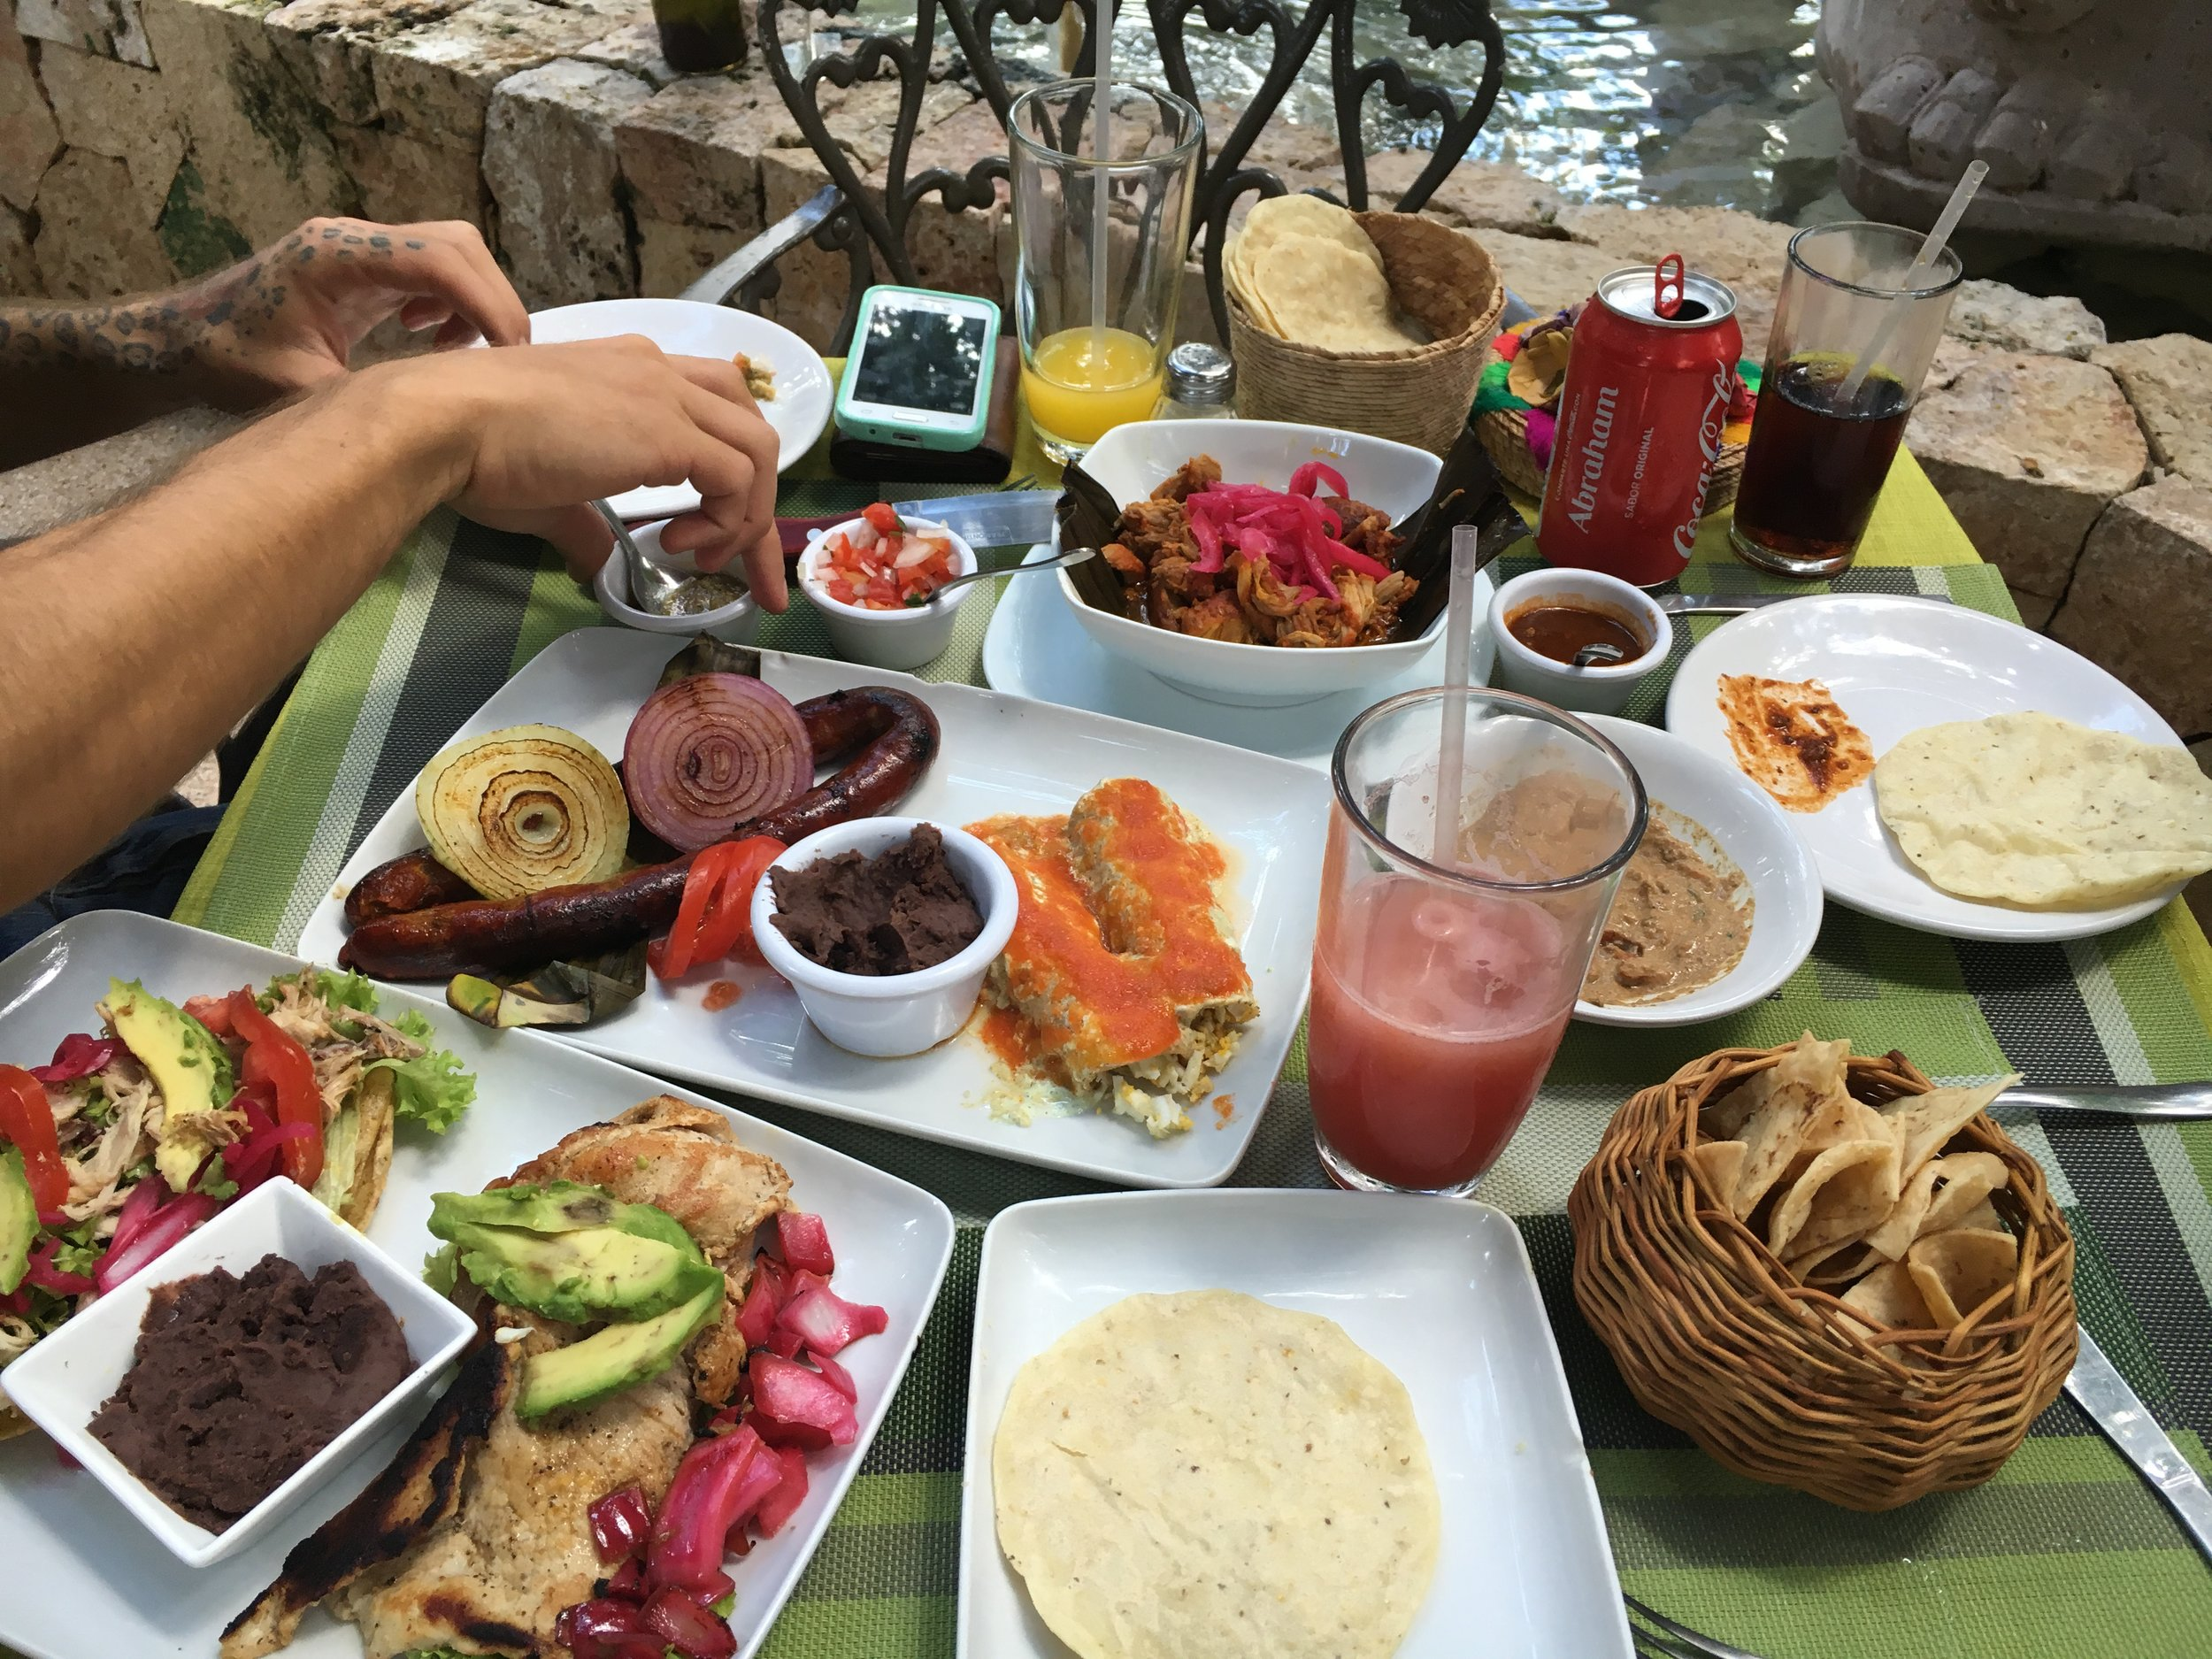 vallodolid-mexico-lunch-photo